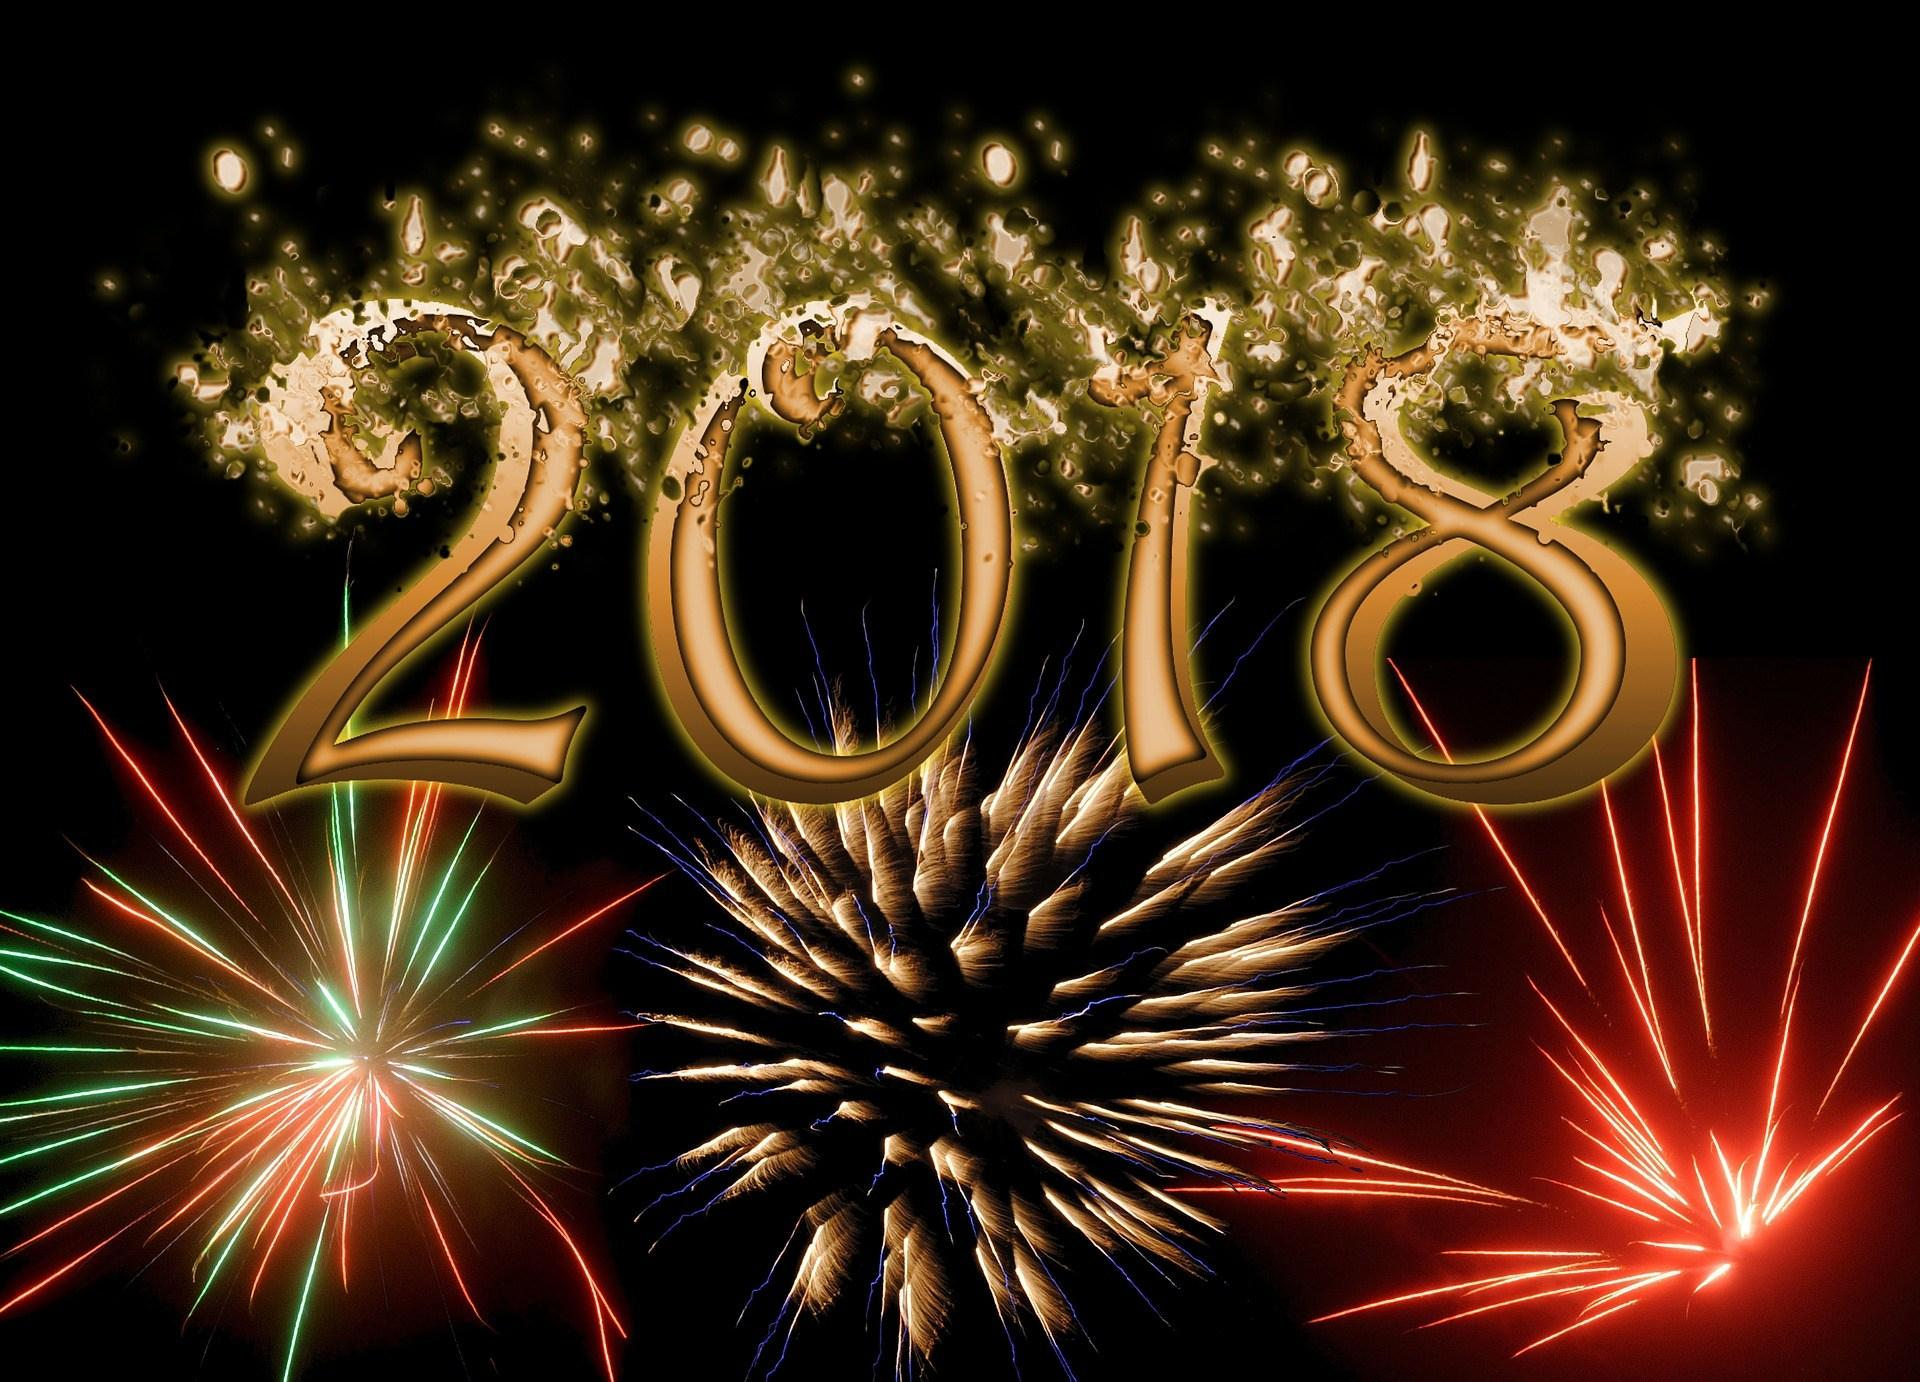 Download Happy New Year 2018 Wallpapers, HD Backgrounds